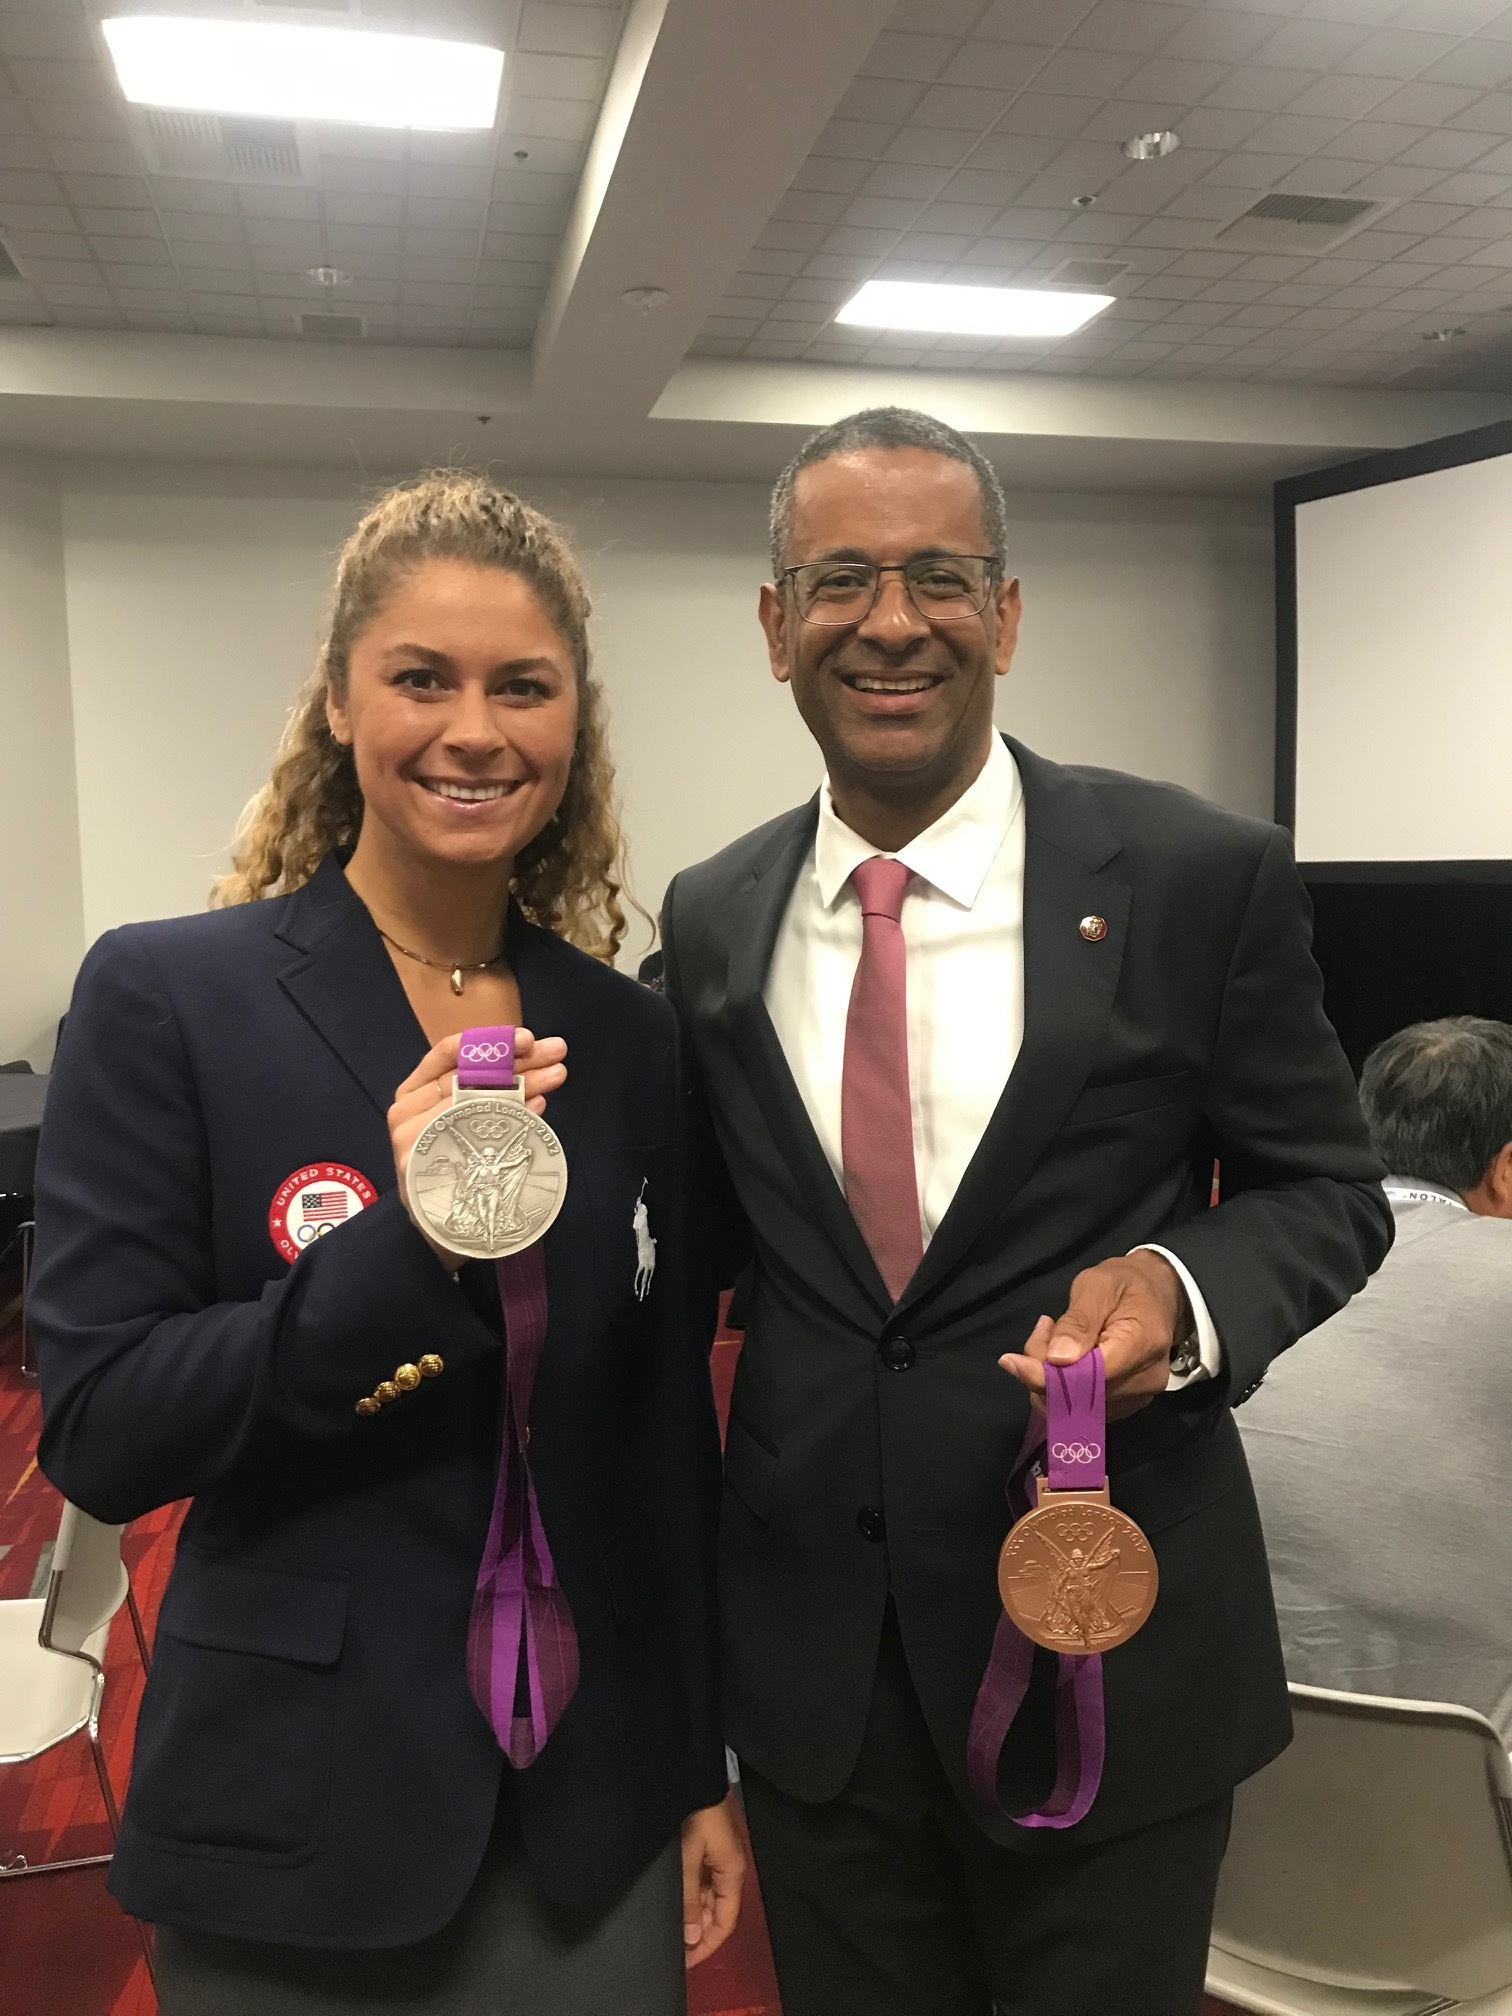 3-time USA swimming Olympian Elizabeth Beisel (DOW) and AIA IR President Thierry Paret, FAIA at the IR Design Awards during A'19